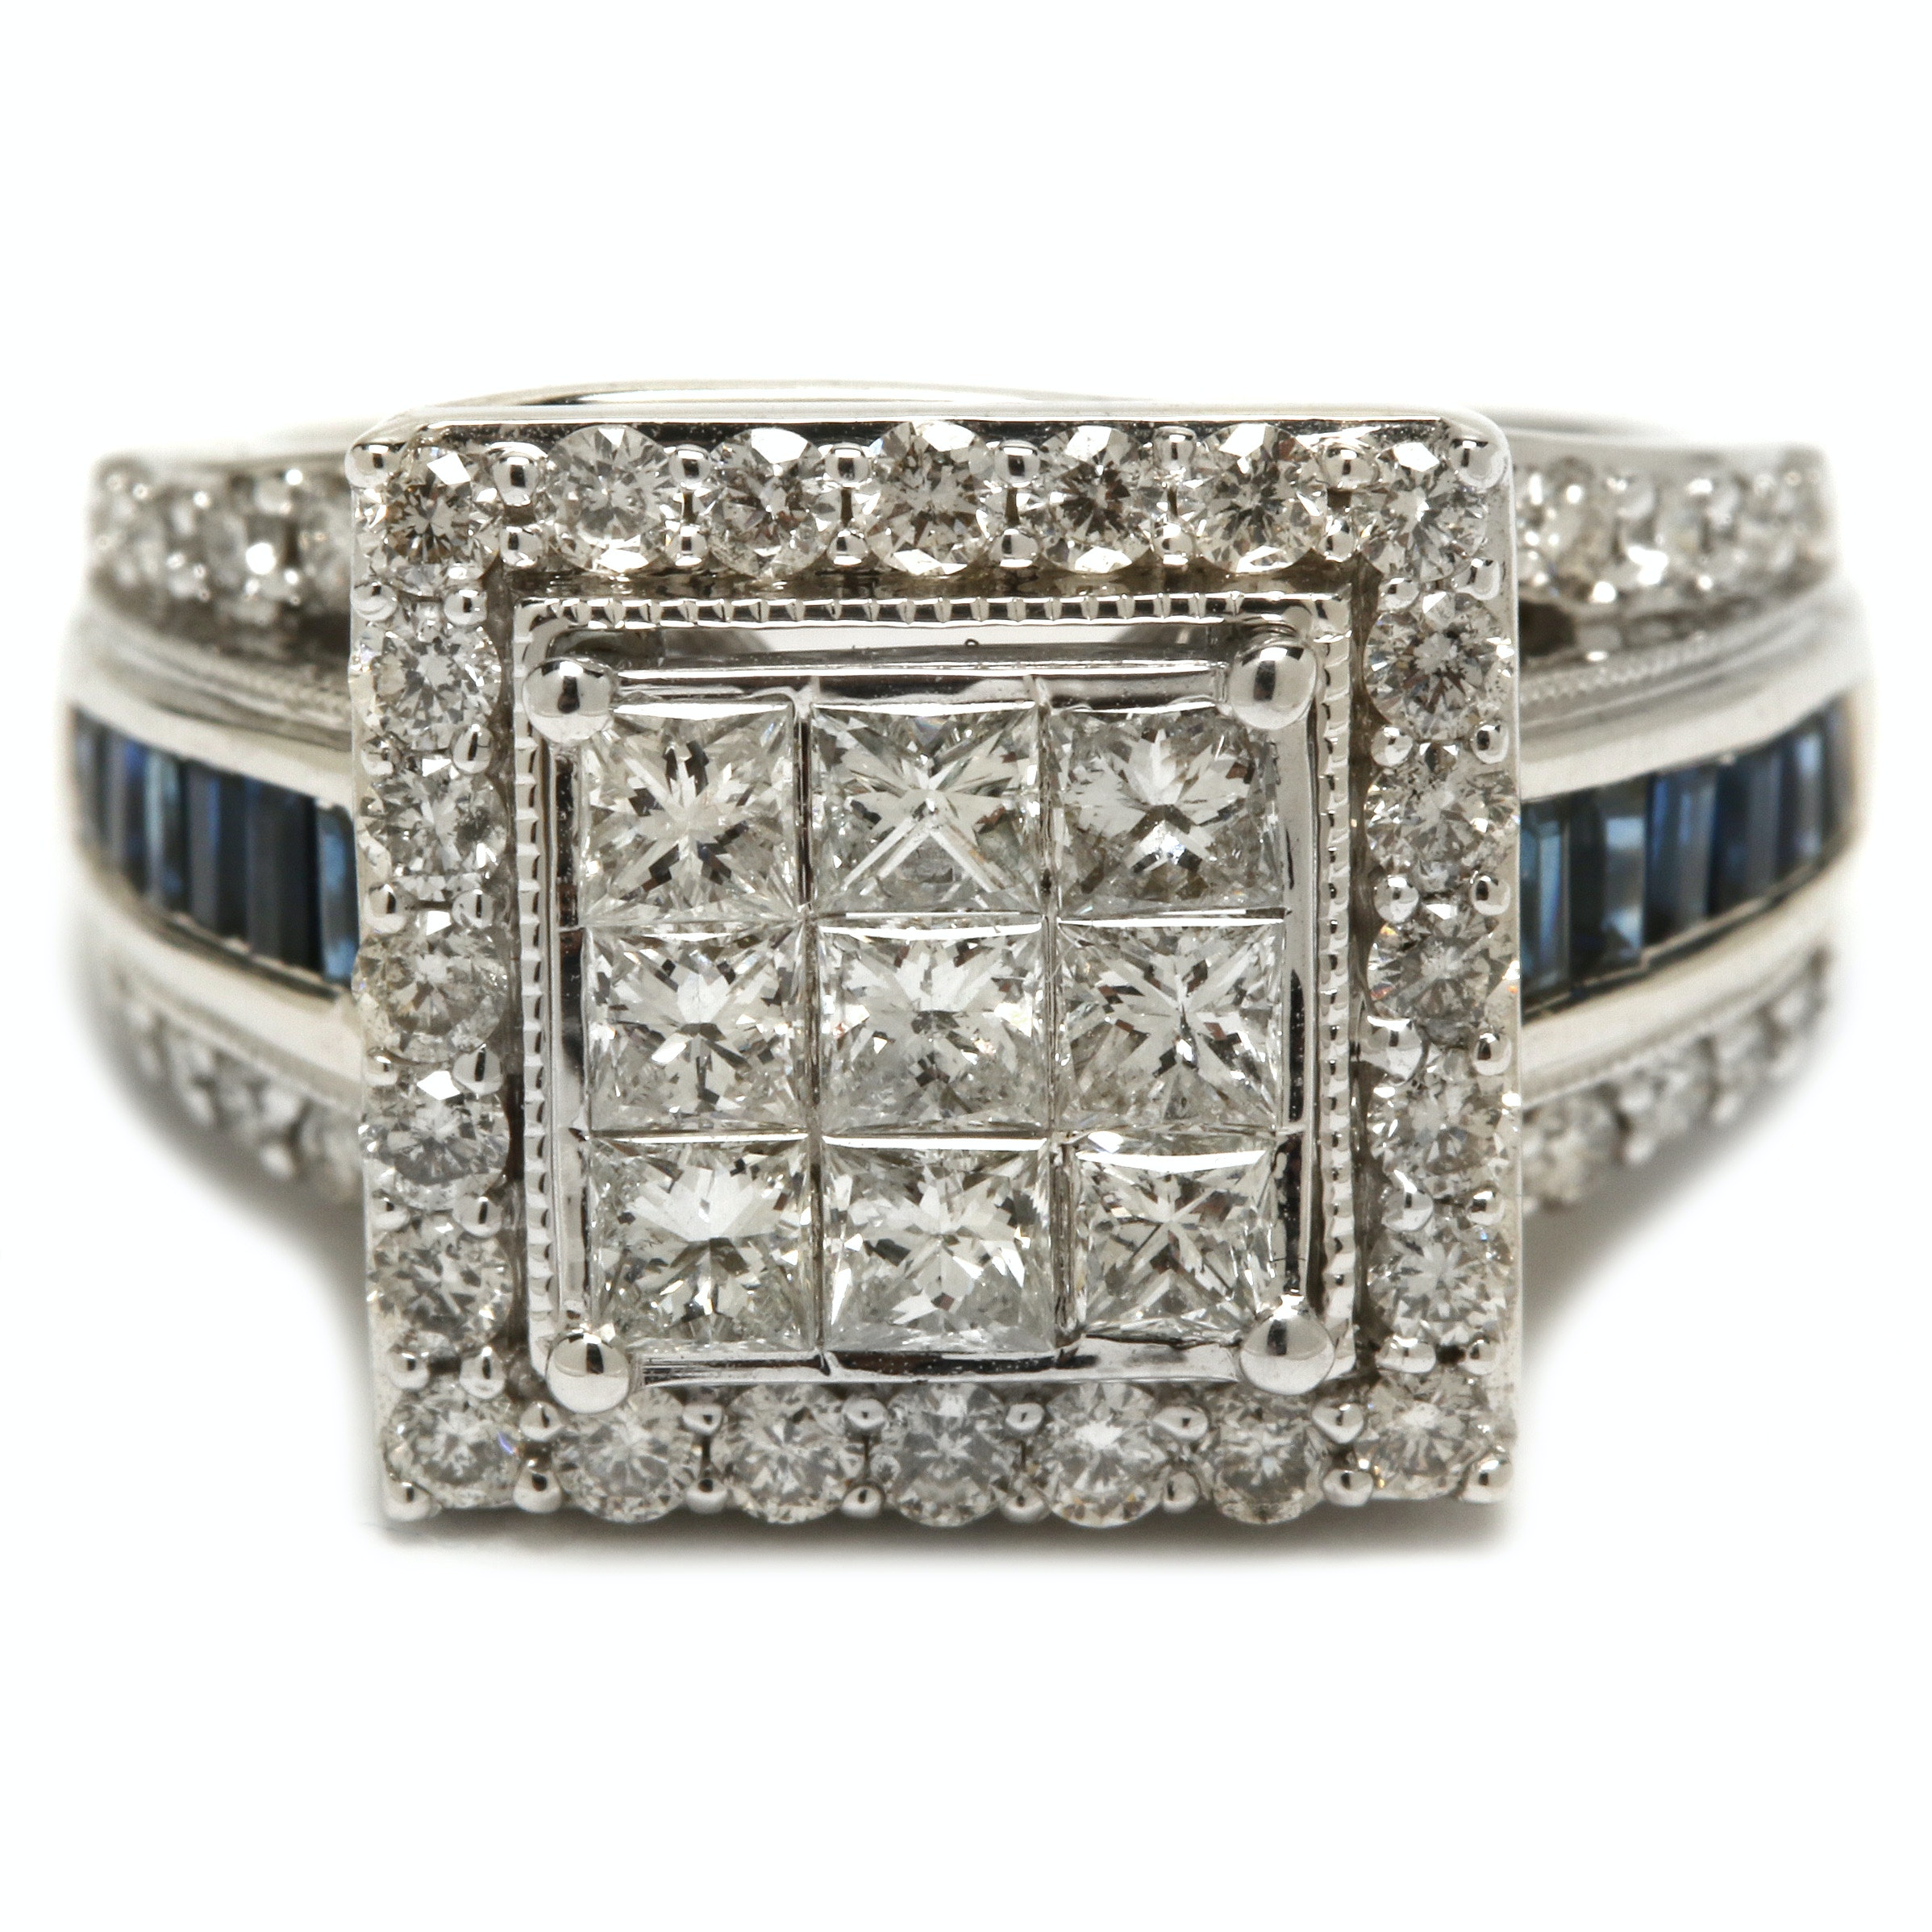 14K White Gold 1.74 CTW Diamond and Sapphire Ring